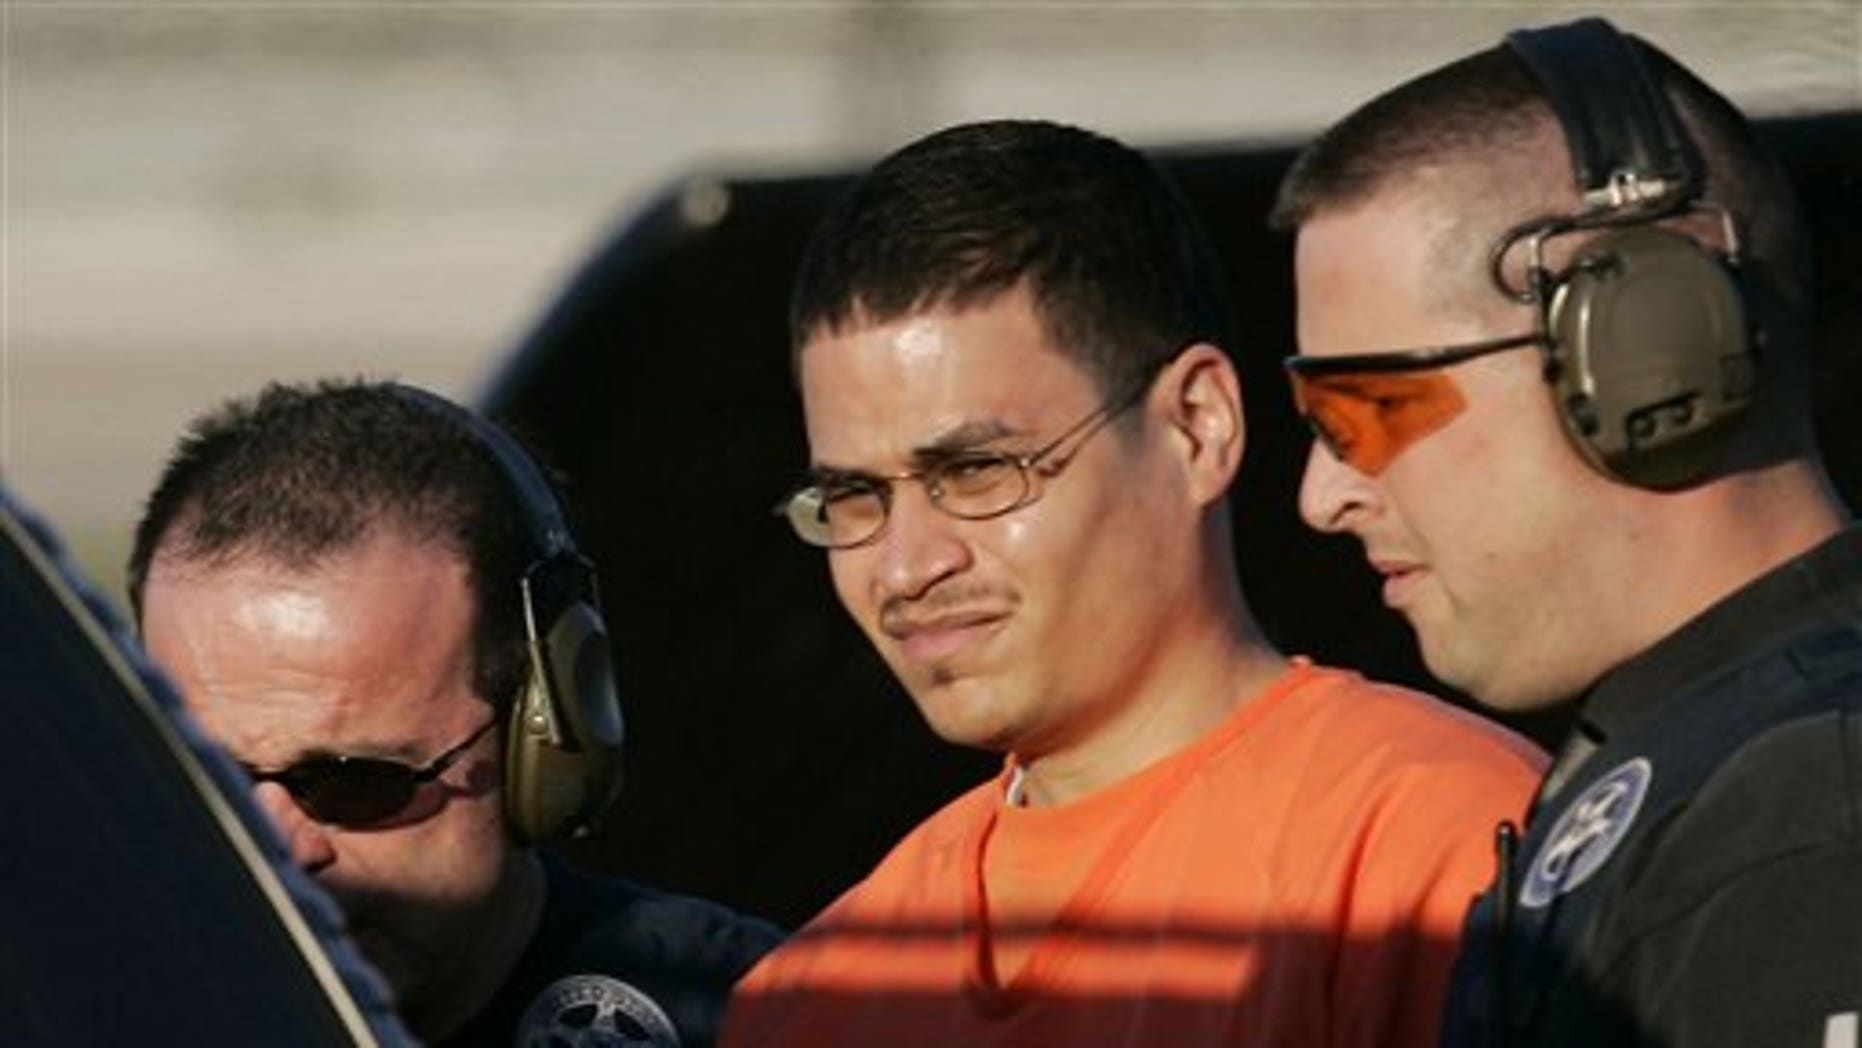 January 5, 2006: Jose Padilla is escorted to a waiting police vehicle by federal marshals near downtown Miami, FL.